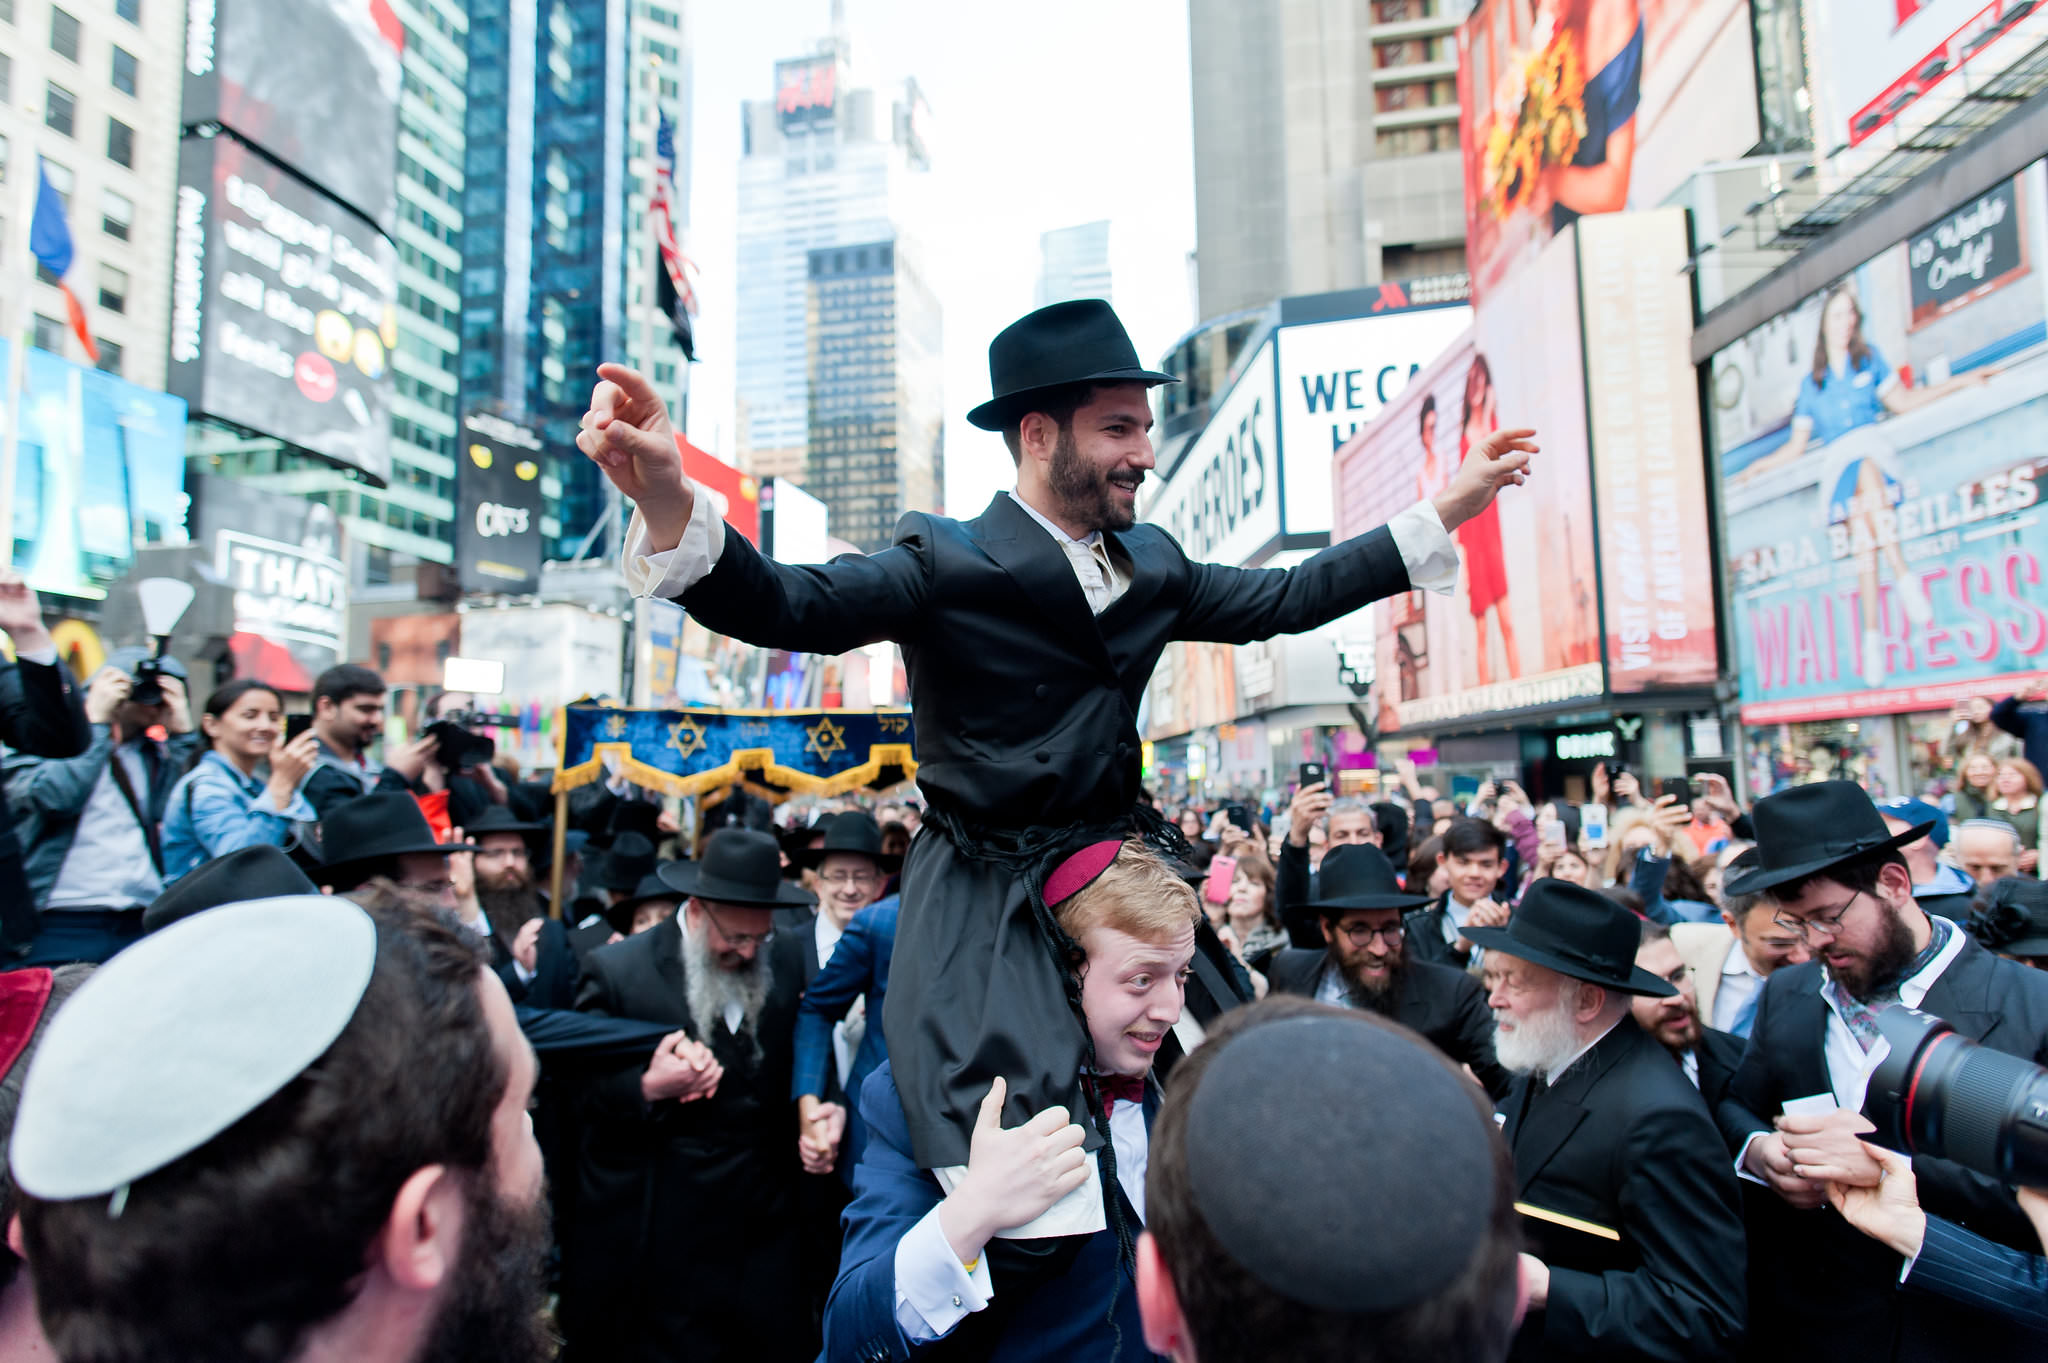 Historic Chabad Orthodox Jewish Wedding in Times Square Manhattan New York NYC Photo by Chaim Schvarcz, groom, groomsmen